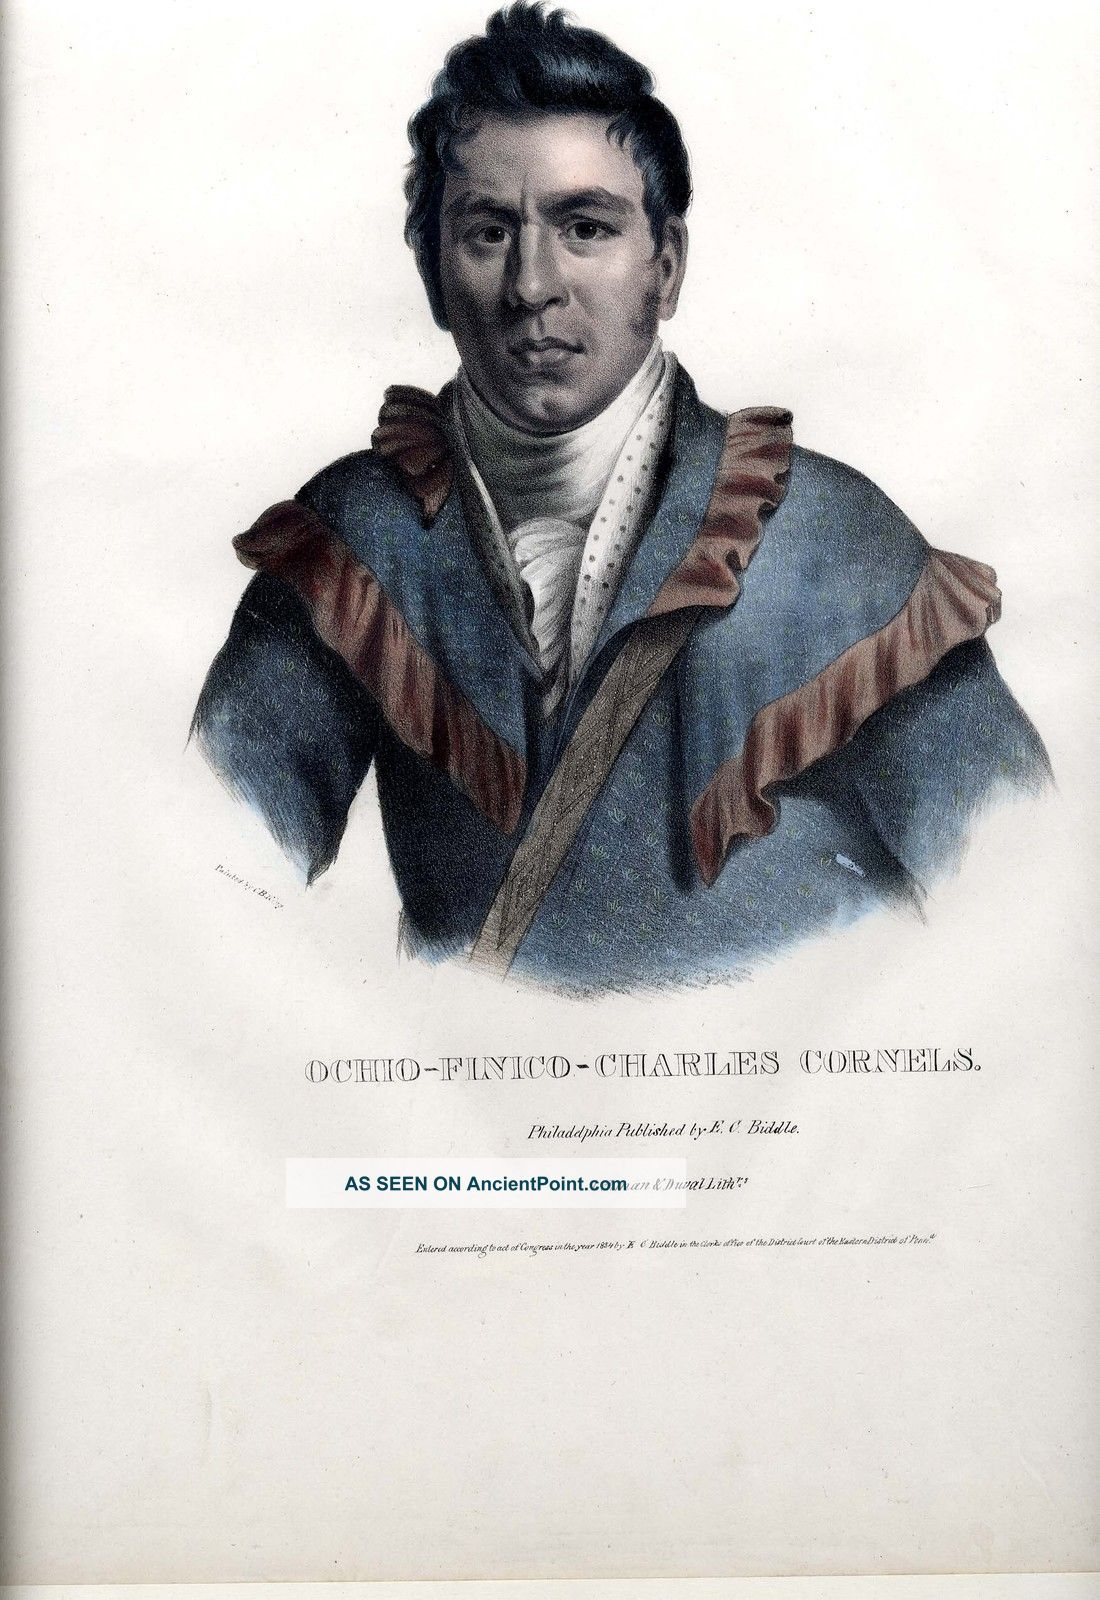 Mckenney Hall 1834 Lithograph - Oche - Finceco Indian Tribes N.  America Lg.  Folio Size Native American photo